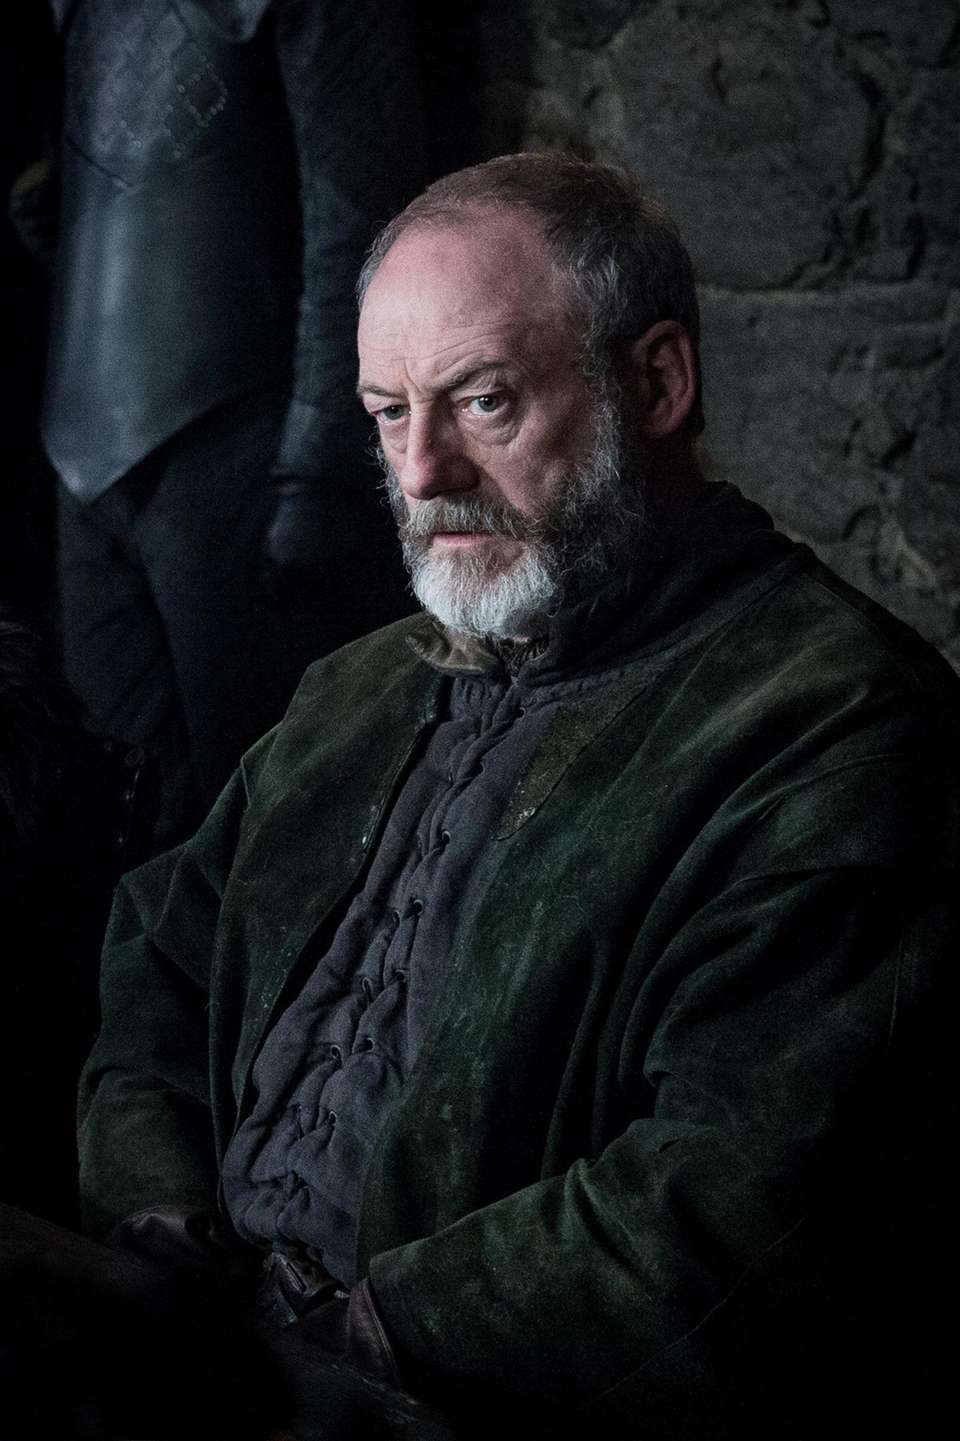 DAVOS SEAWORTH (Liam Cunningham) WHO A former smuggler